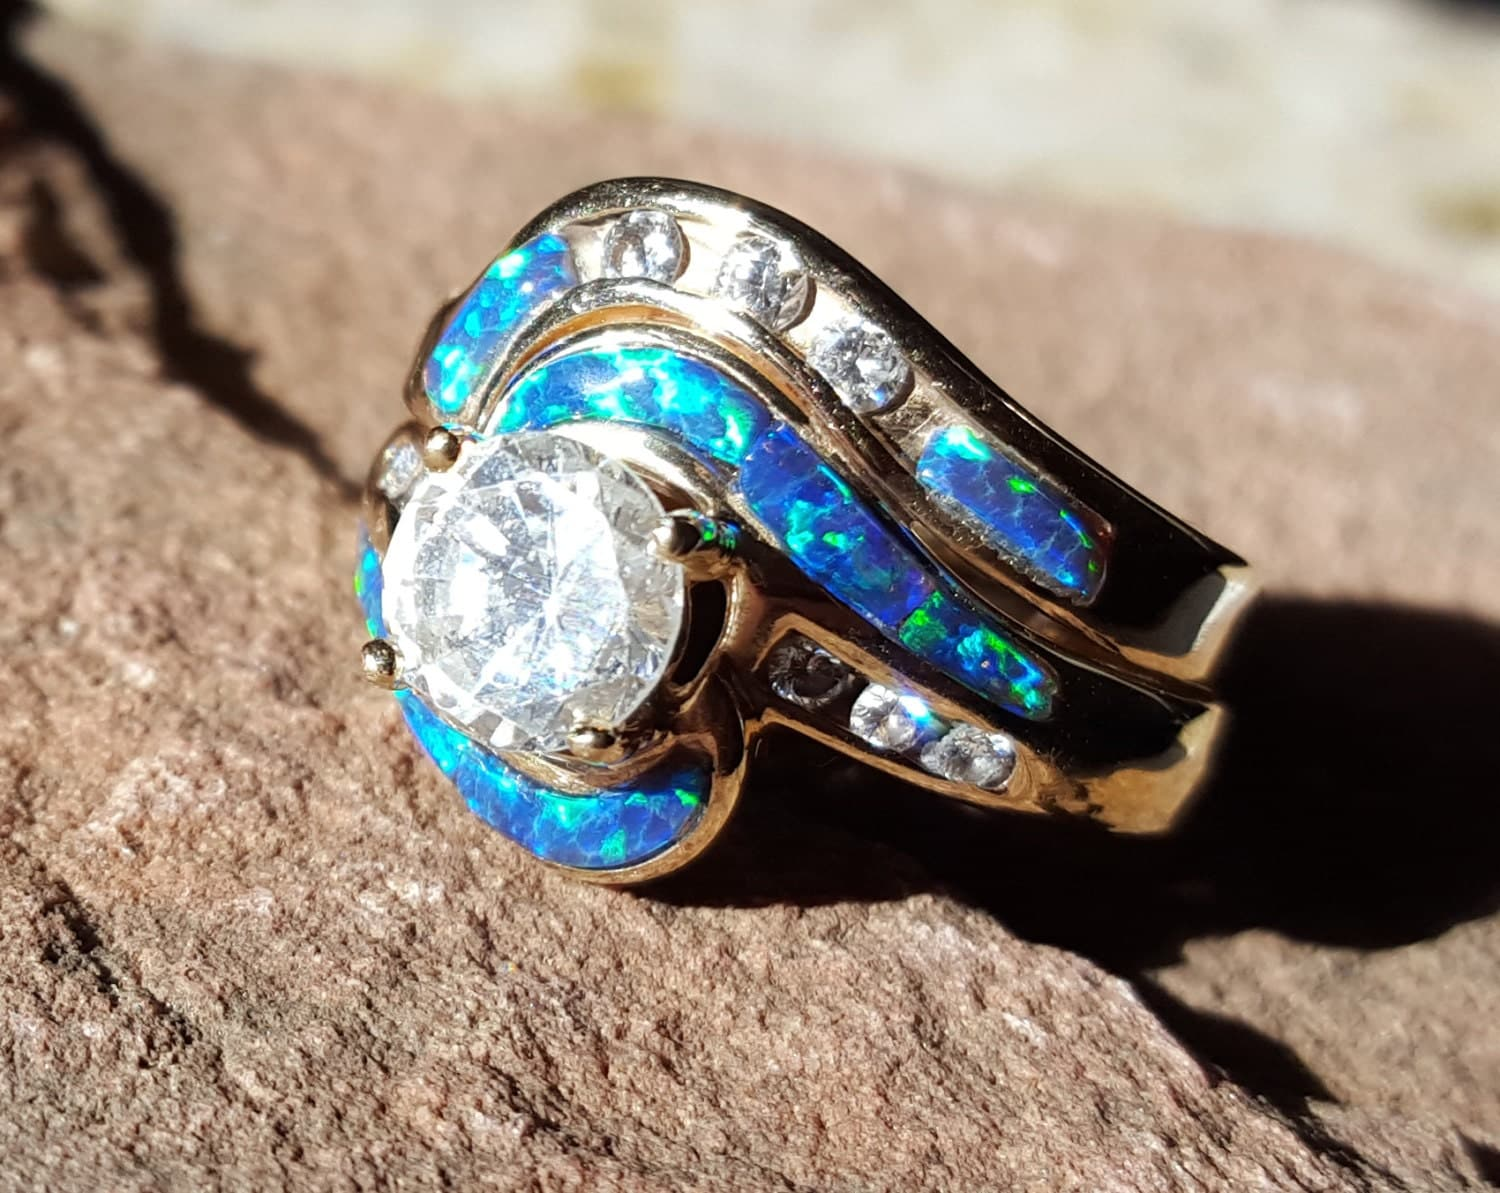 Grand Galaxy Diamond Opal Inlay 14k Gold Engagement Ring And